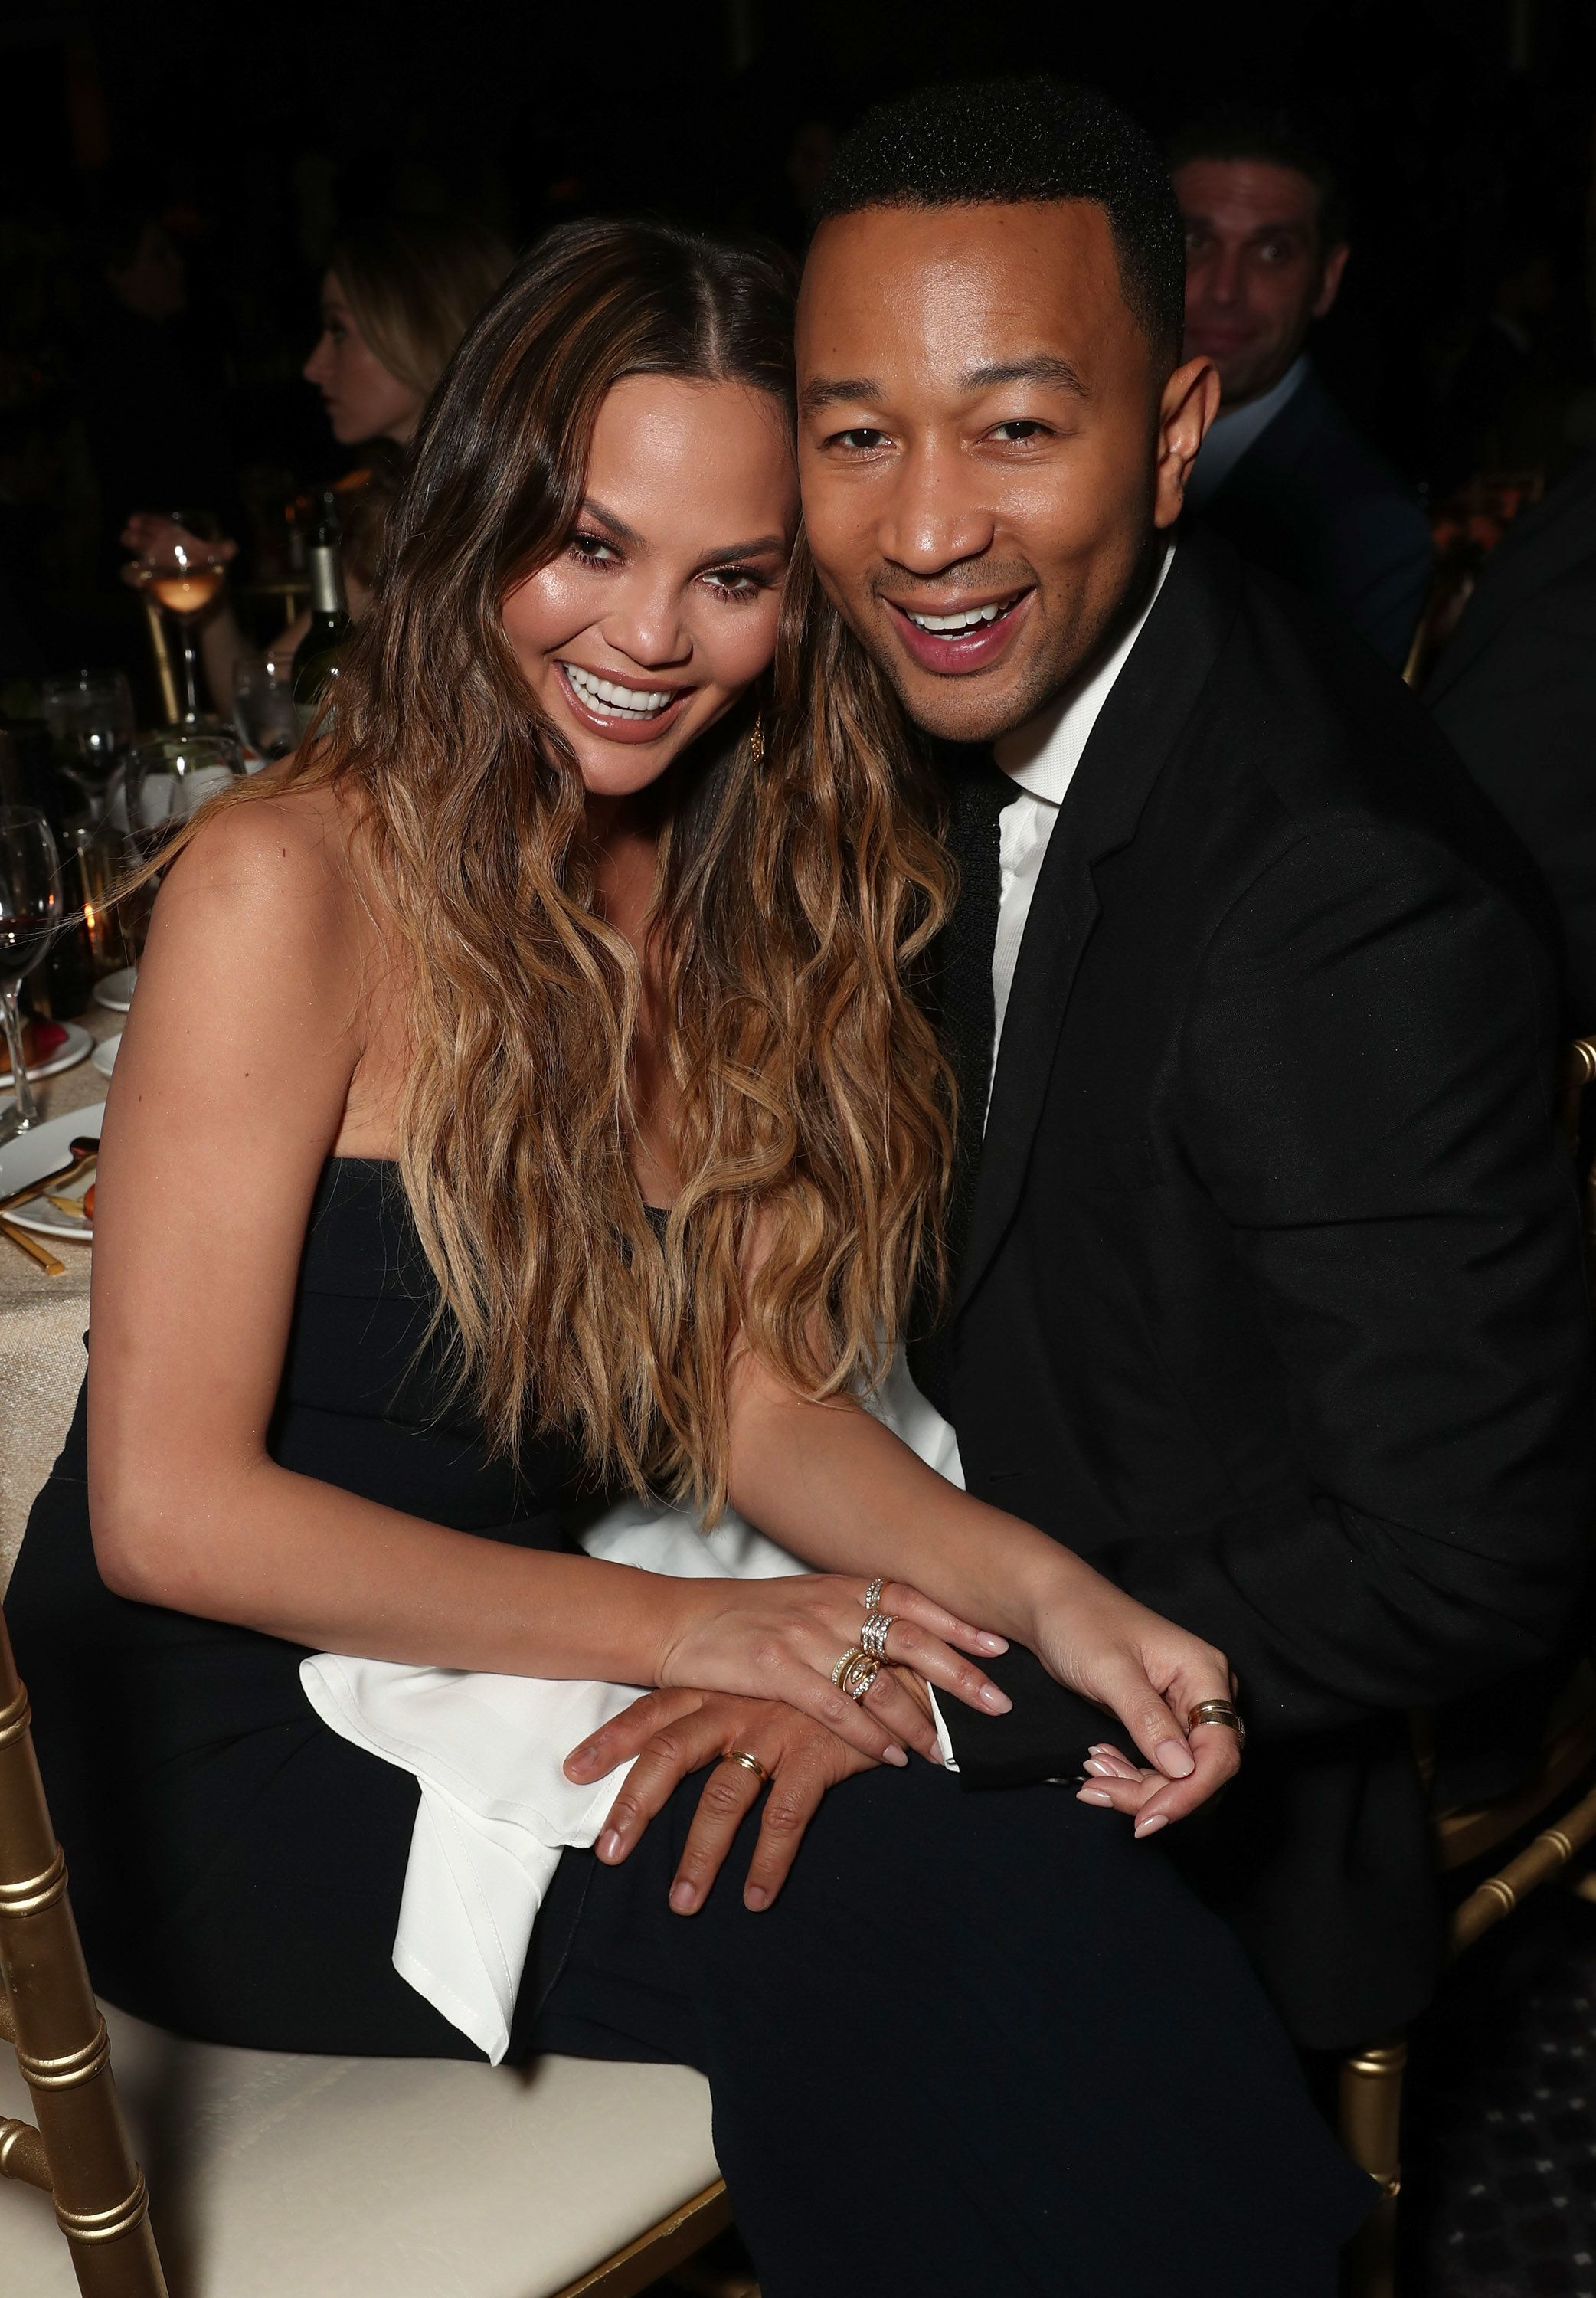 BEVERLY HILLS, CA - JANUARY 28:  Chrissy Teigen and John Legend attend the 28th Annual Producers Guild Awards at The Beverly Hilton Hotel on January 28, 2017 in Beverly Hills, California.  (Photo by Todd Williamson/Getty Images)